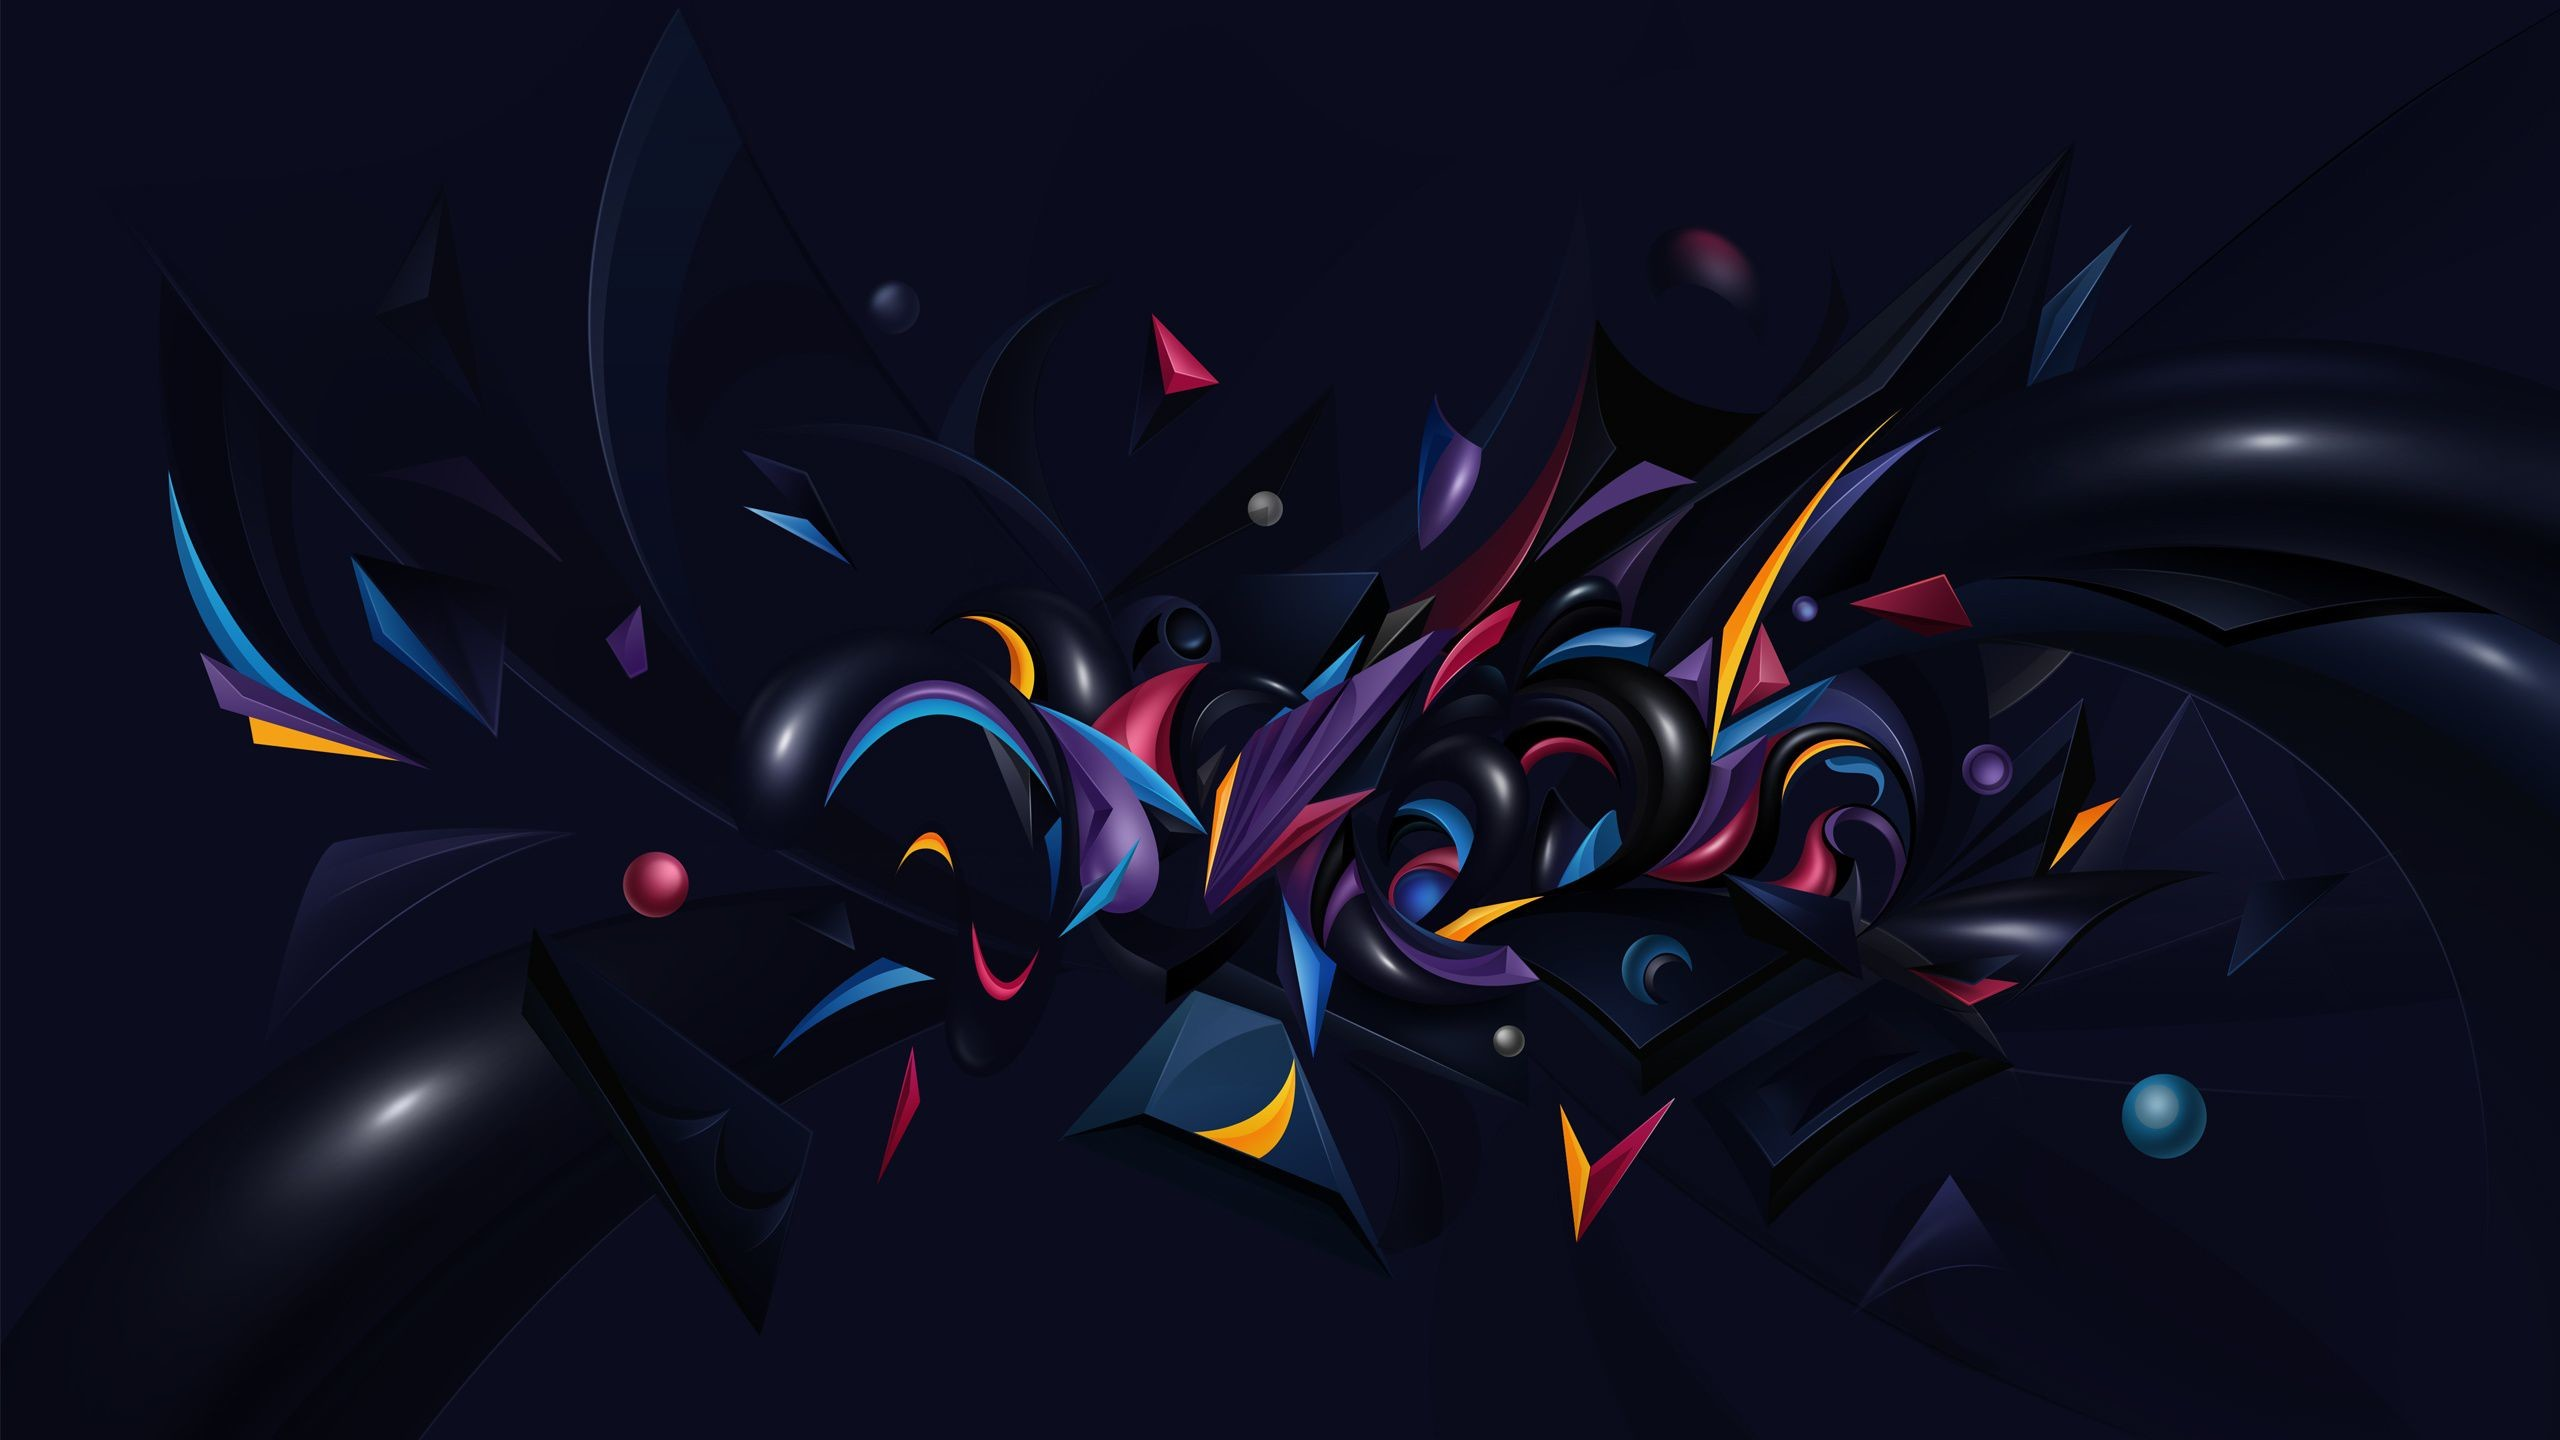 Abstract Wallpaper HD Wallpapers Backgrounds of Your Choice Wallpaper Hd Abstract  Wallpapers)